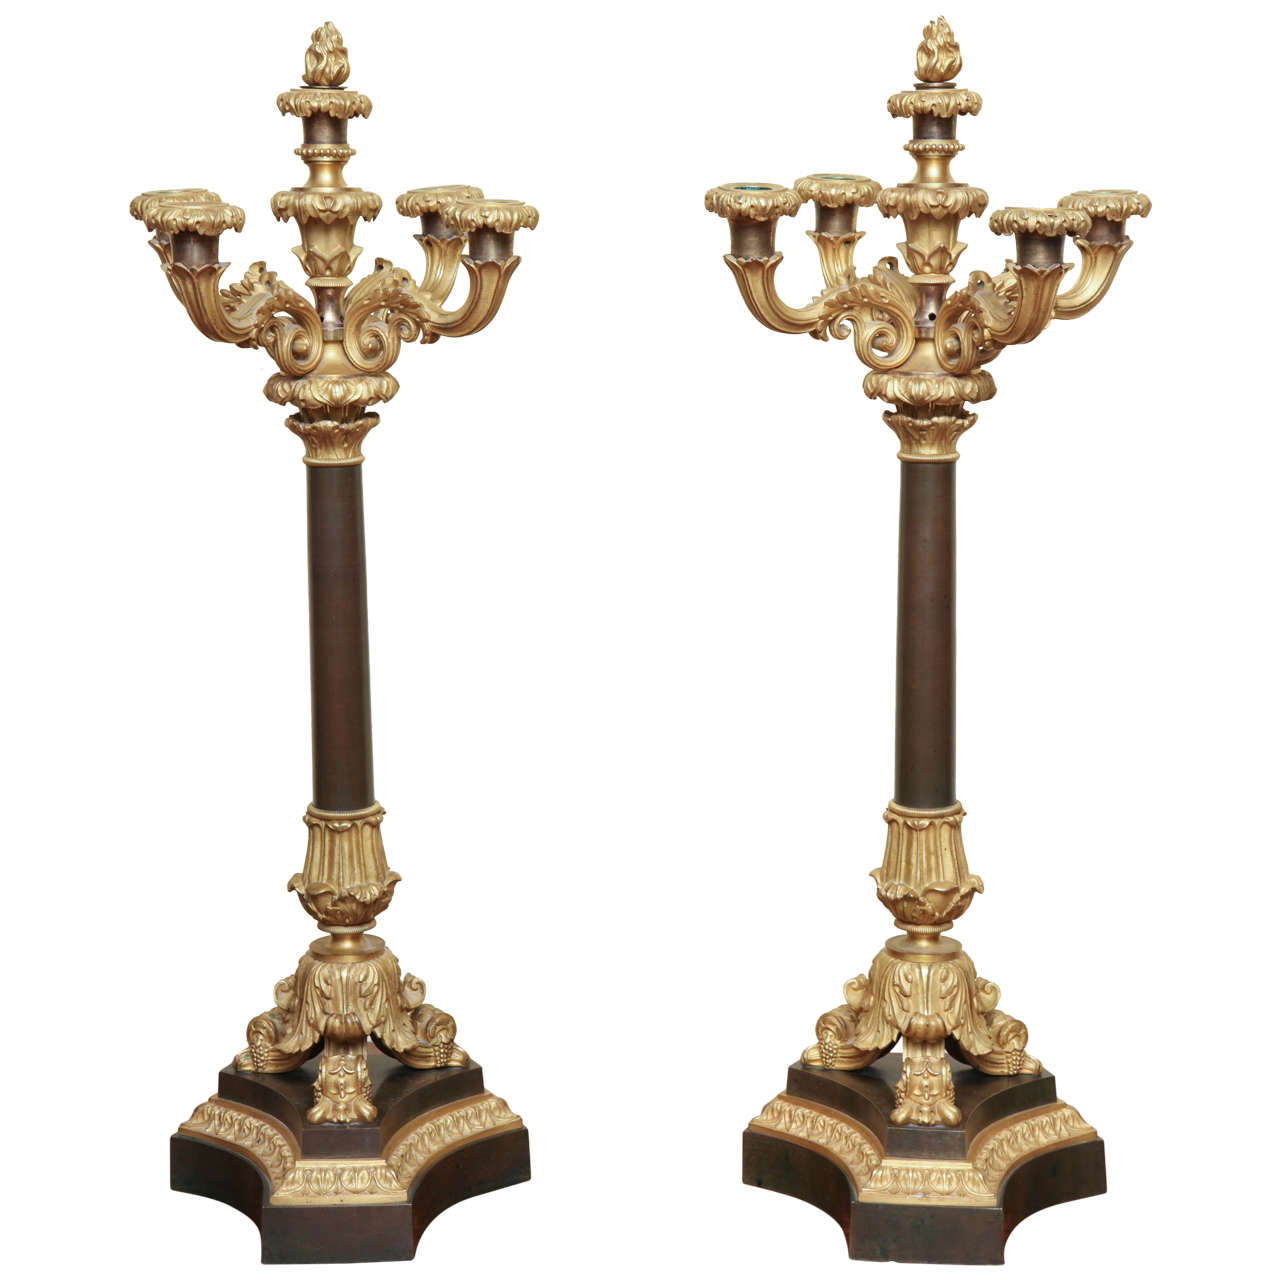 Pair of Louis Philippe Ormolu and Bronze Candelabra, French, circa 1830